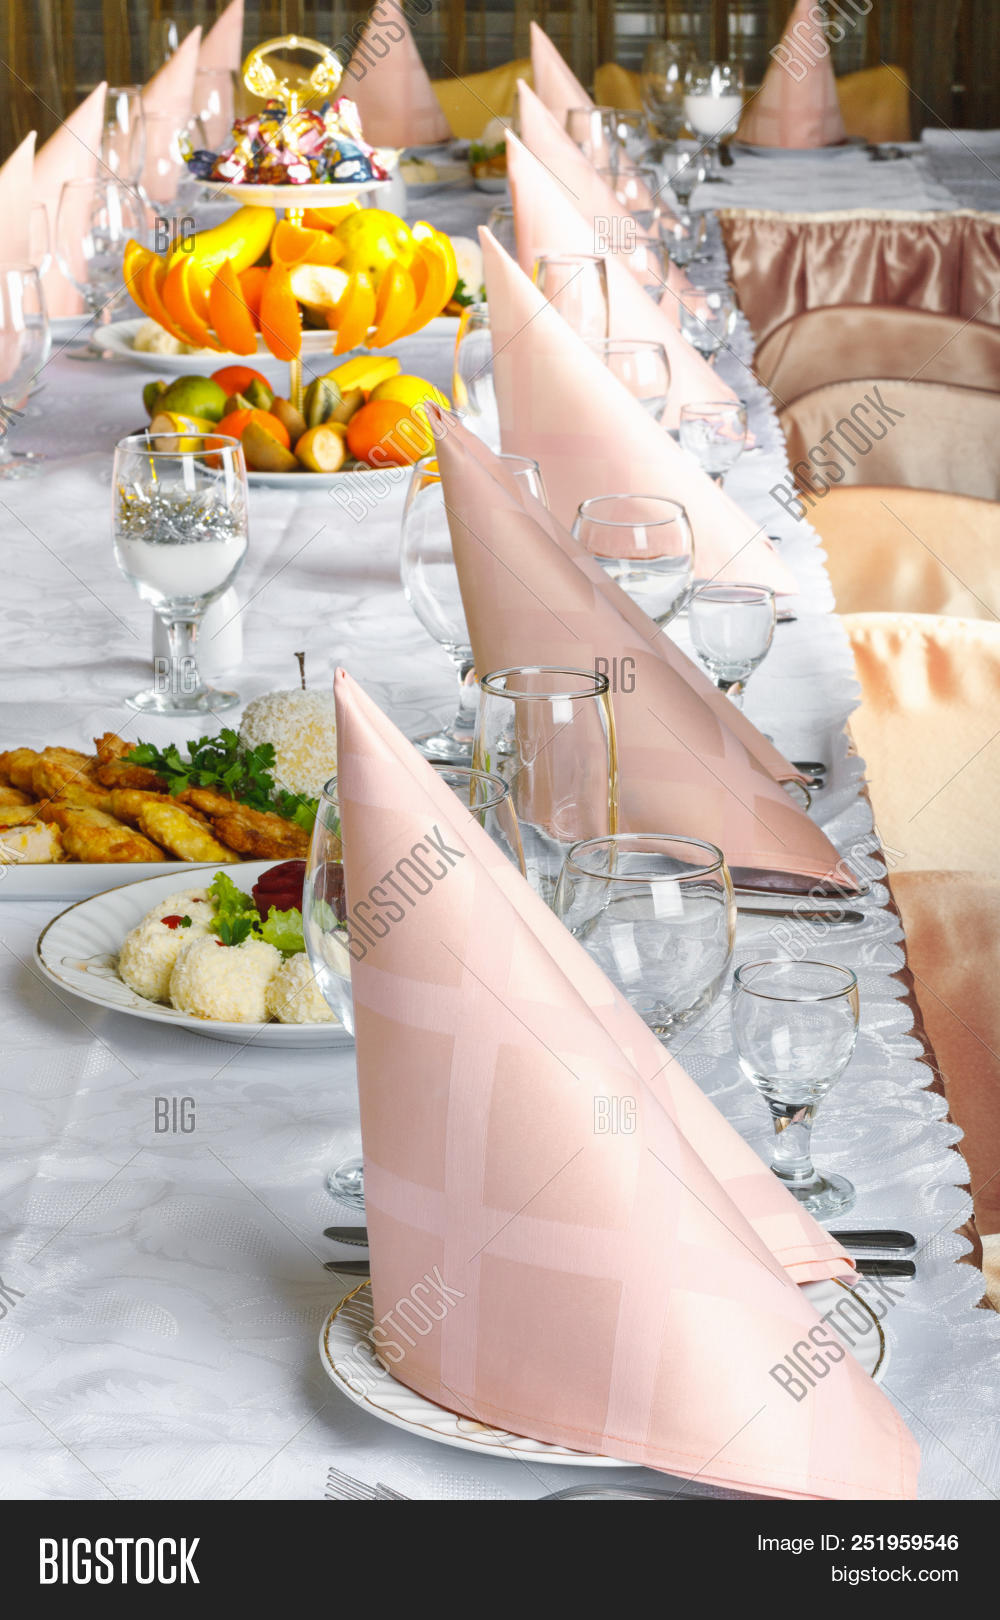 appetizer,background,banquet,beach,buffet,cafe,caterer,catering,closeup,crystal,cutlery,decoration,design,dining,dinner,dishware,drink,eat,event,flatware,food,glass,gourmet,holiday,interior,kitchen,knife,lunch,luxury,menu,napkin,plate,professional,restaurant,room,serve,served,service,serving,set,spoon,table,tableware,utensil,white,wine,wood